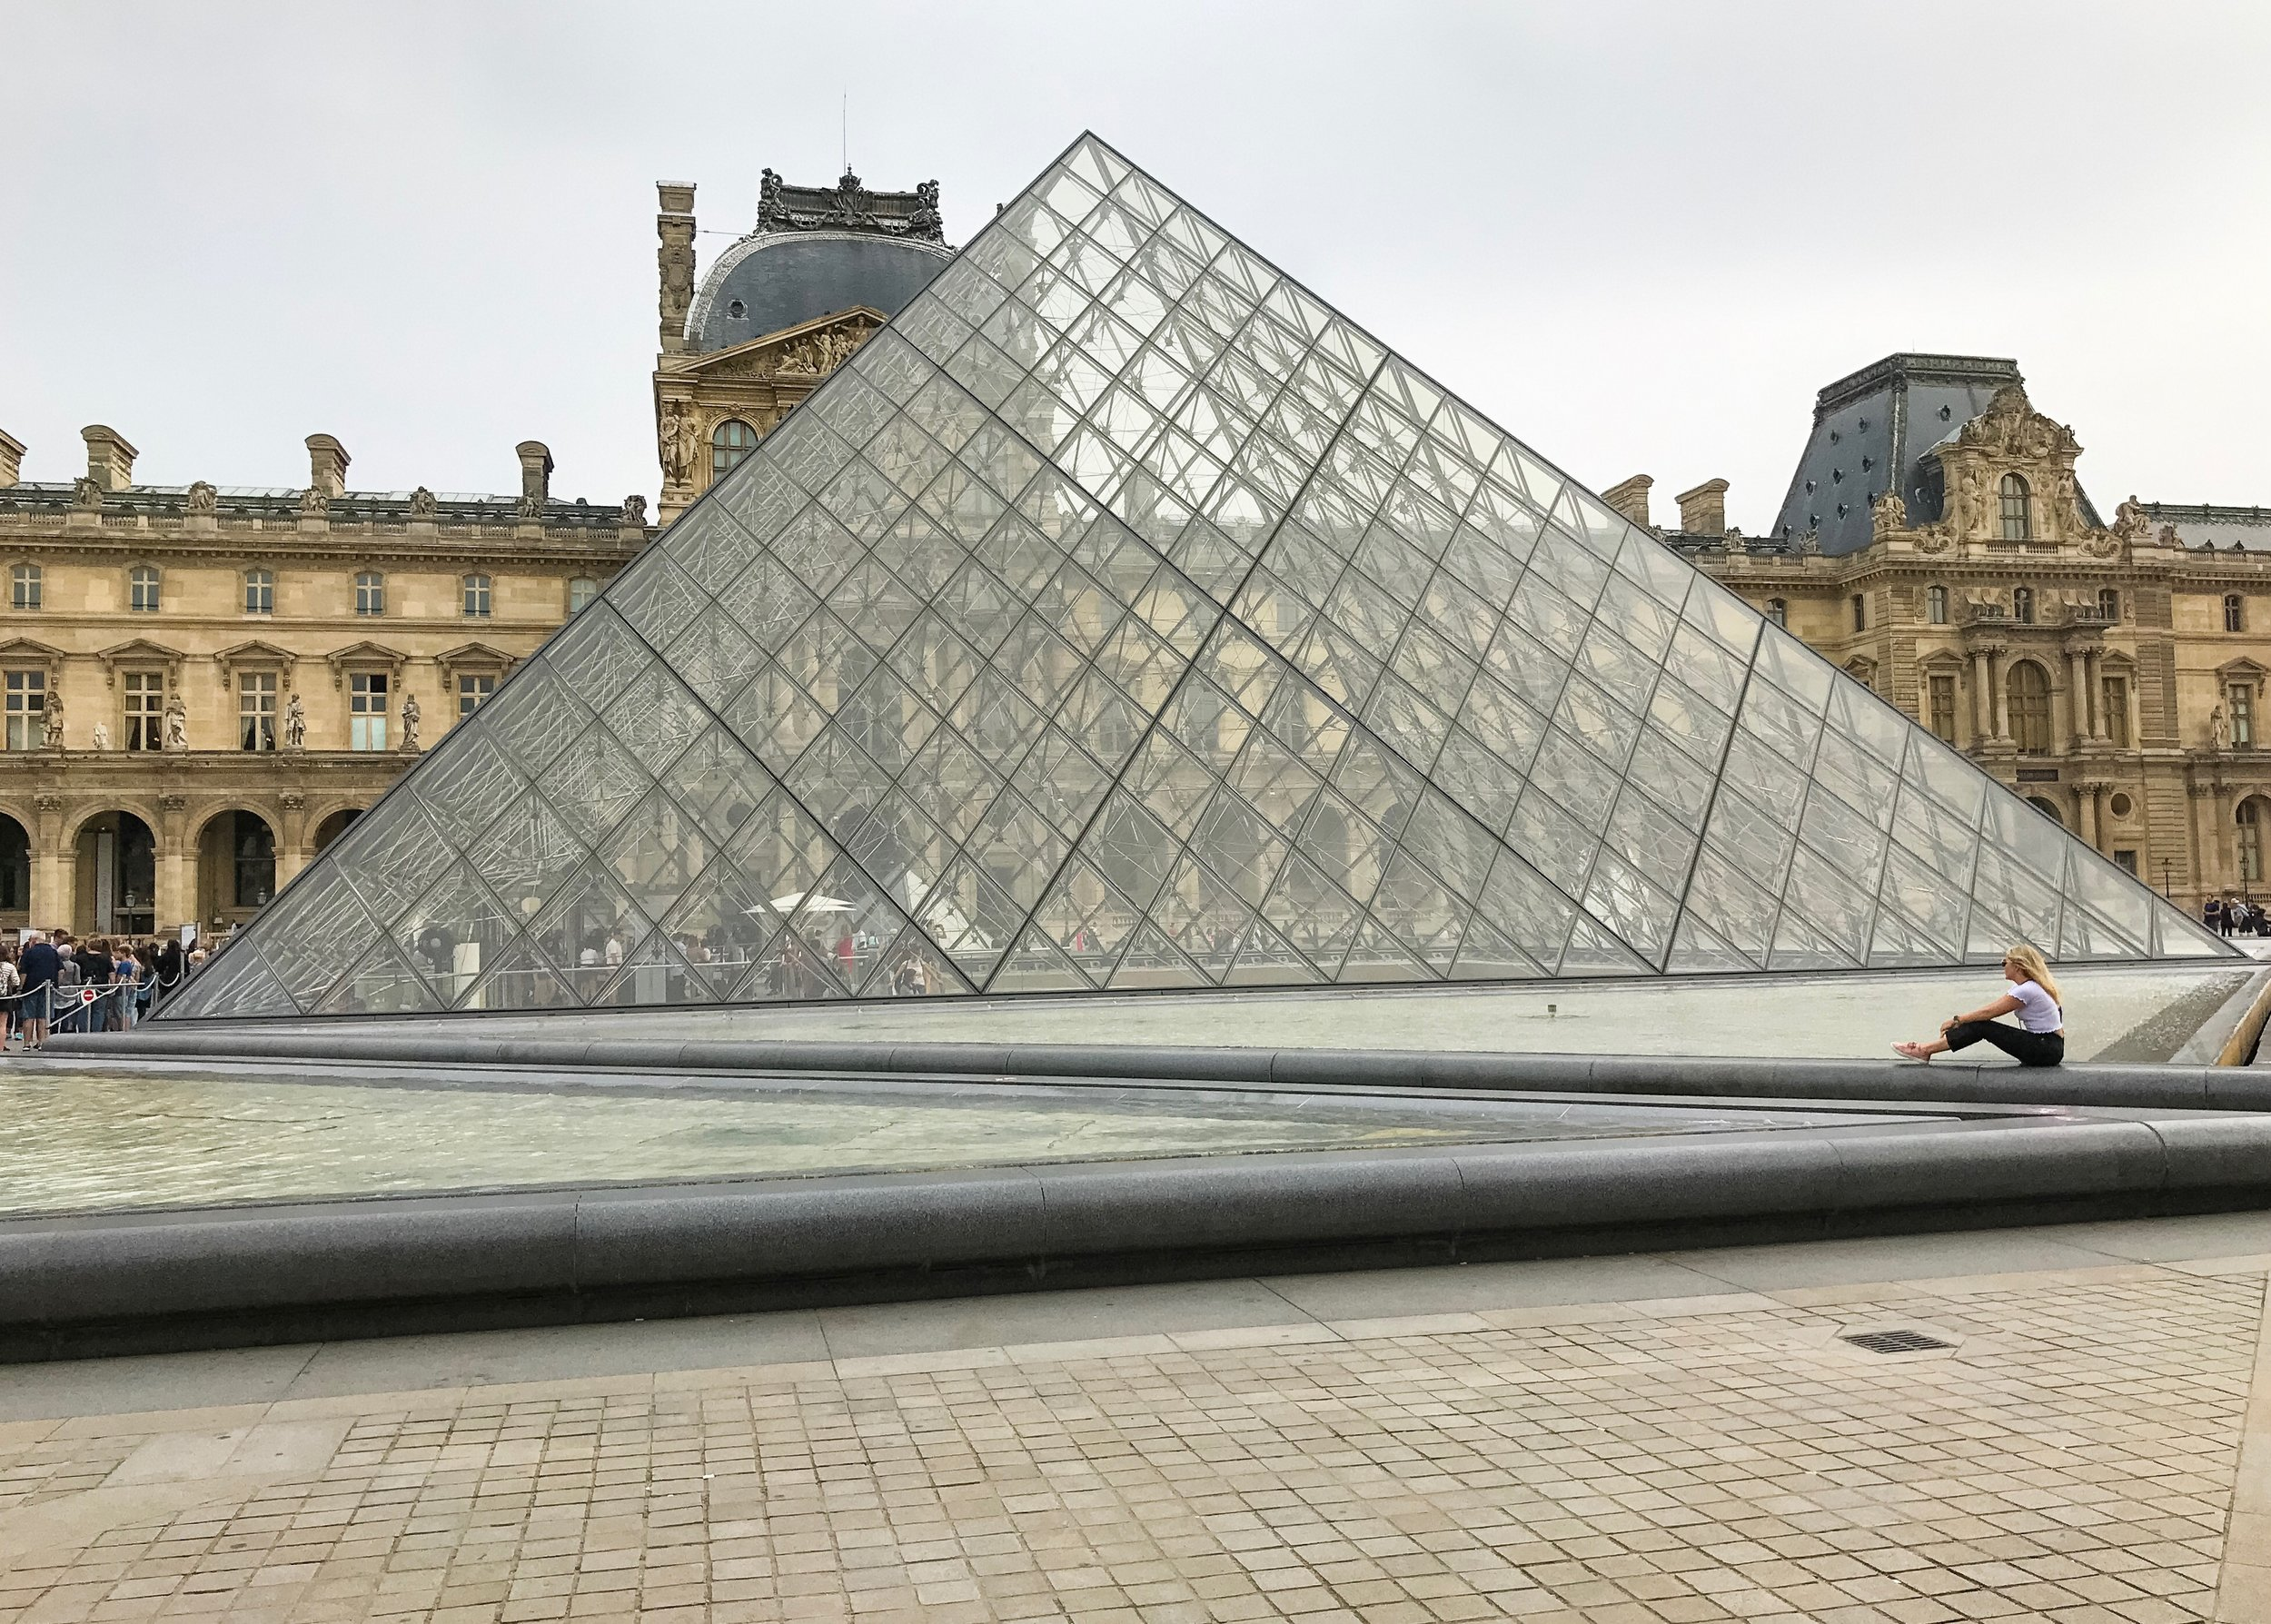 The Louvre... even more beautiful in person than I imagined